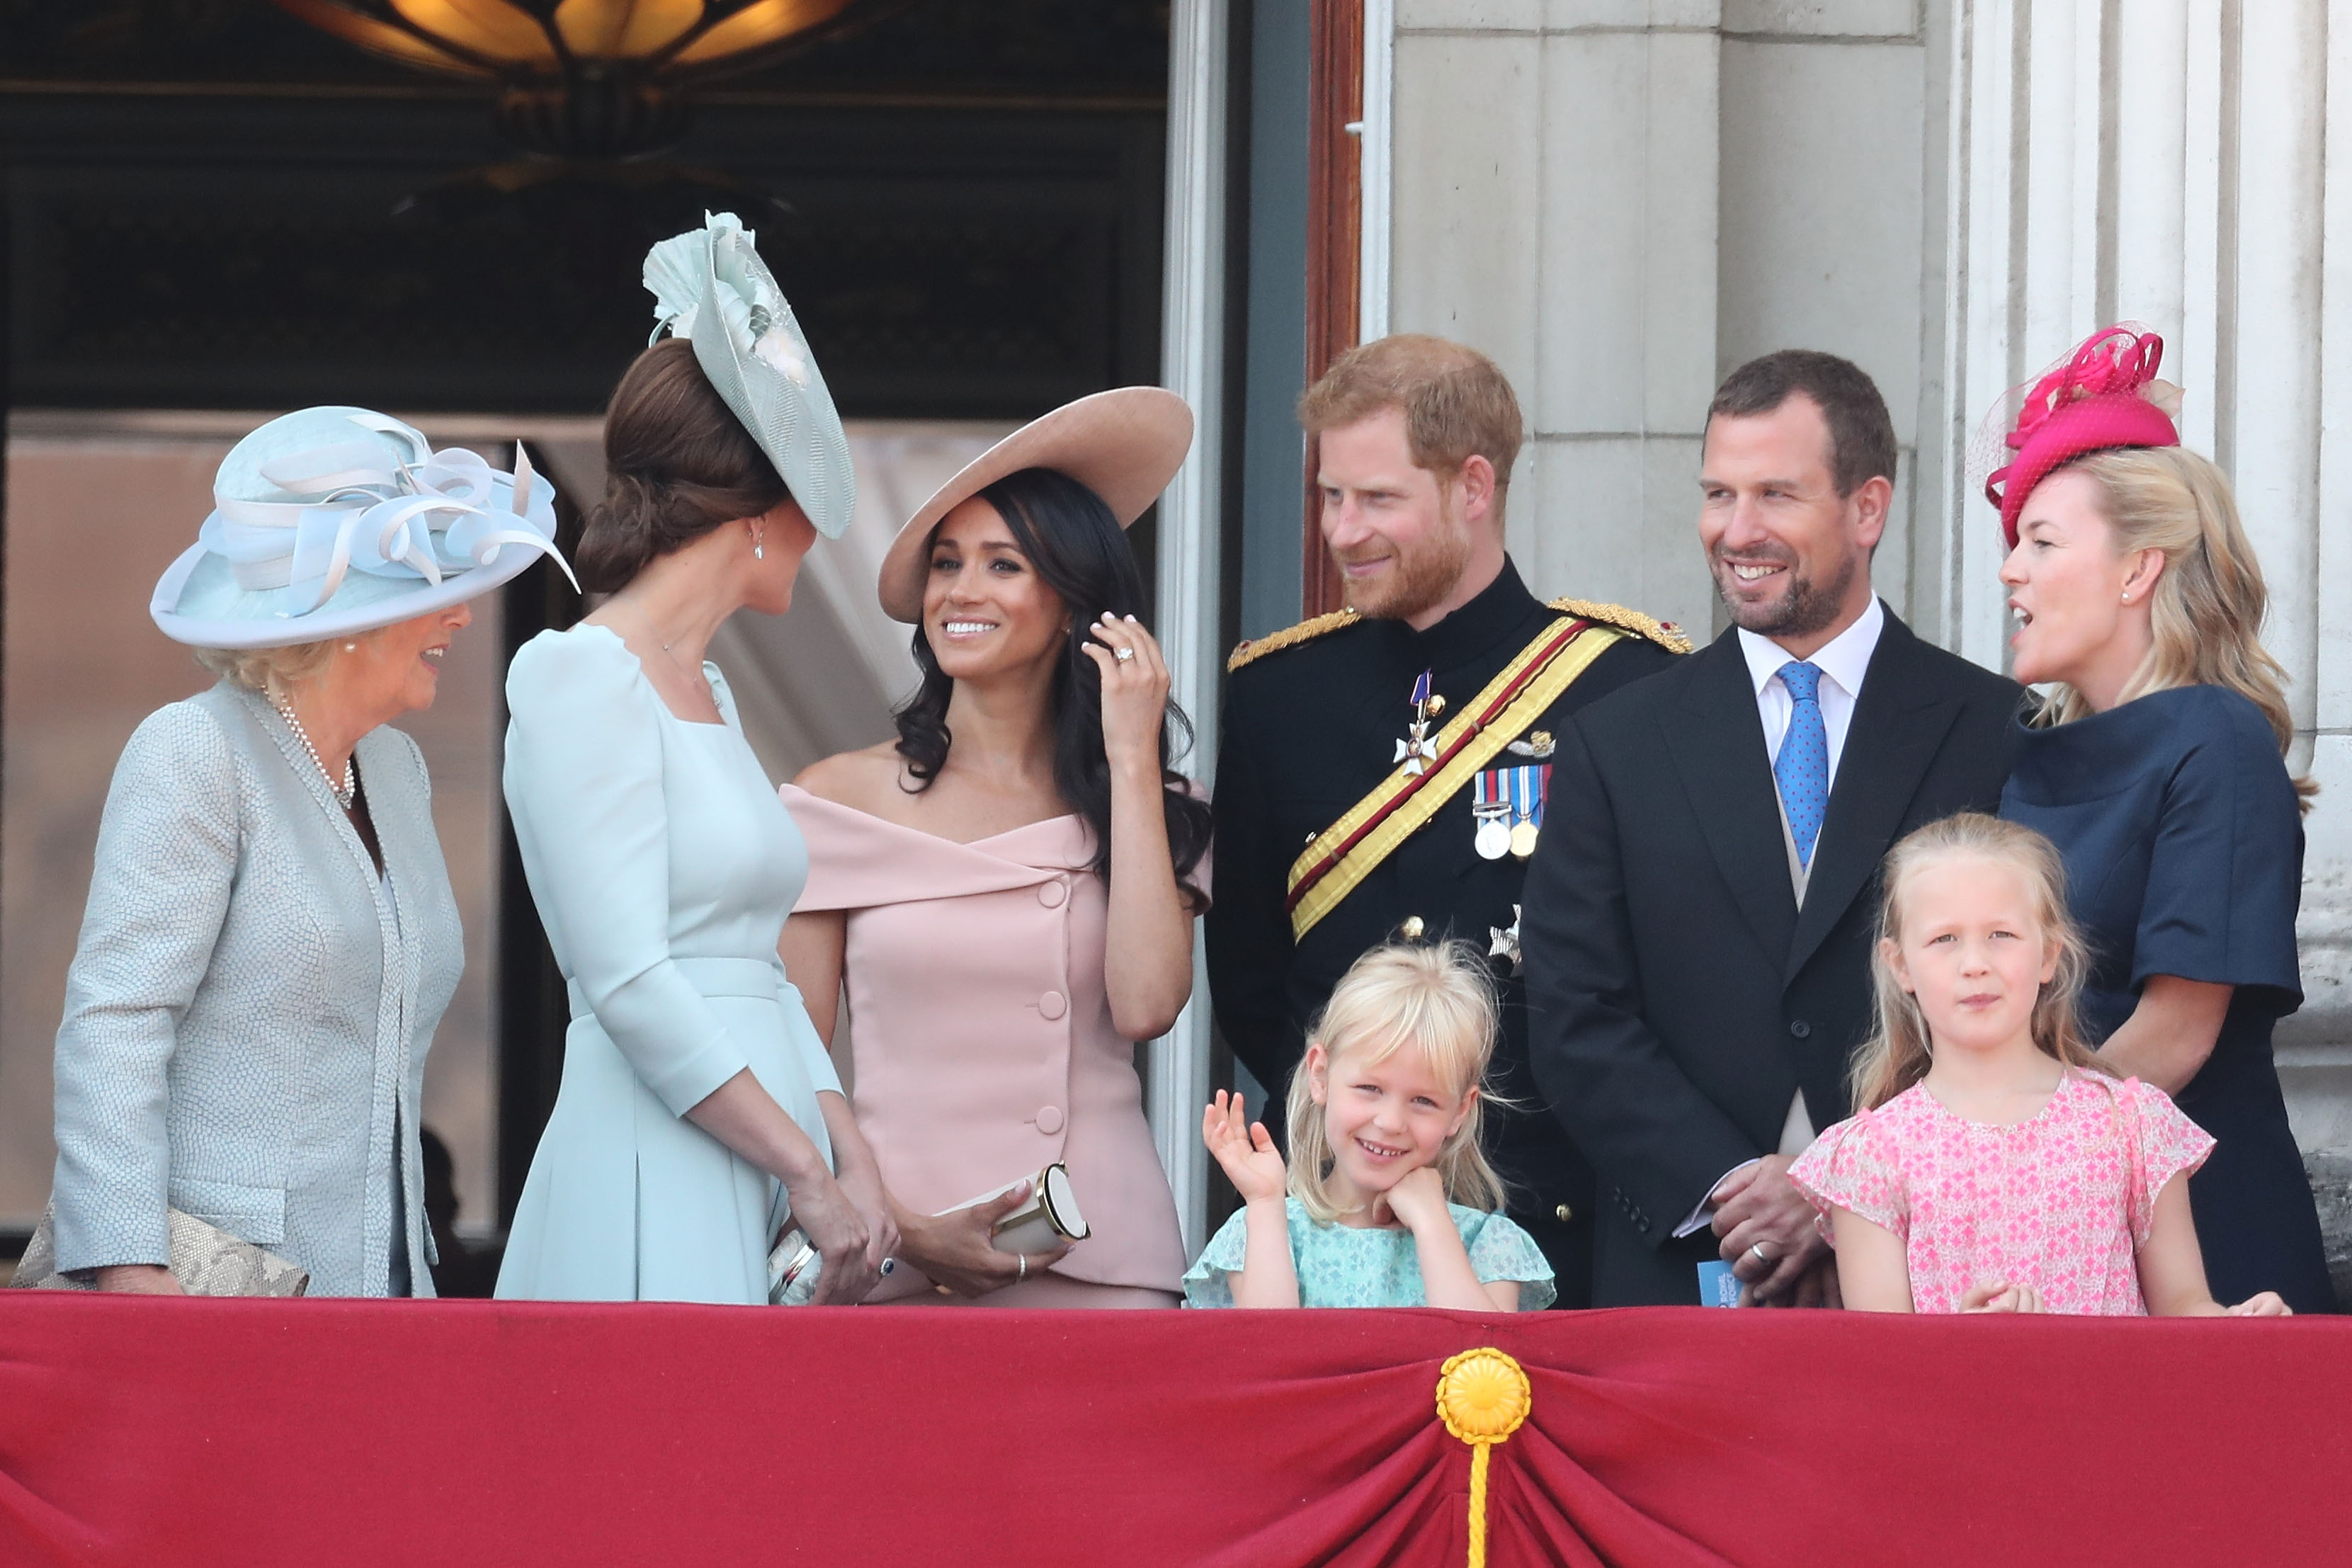 Camilla, Duchess Of Cornwall, Catherine, Duchess of Cambridge, Meghan, Duchess of Sussex, Prince Harry, Duke of Sussex, Peter Phillips, Autumn Phillips, Isla Phillips and Savannah Phillips on the balcony of Buckingham Palace during Trooping The Colour on